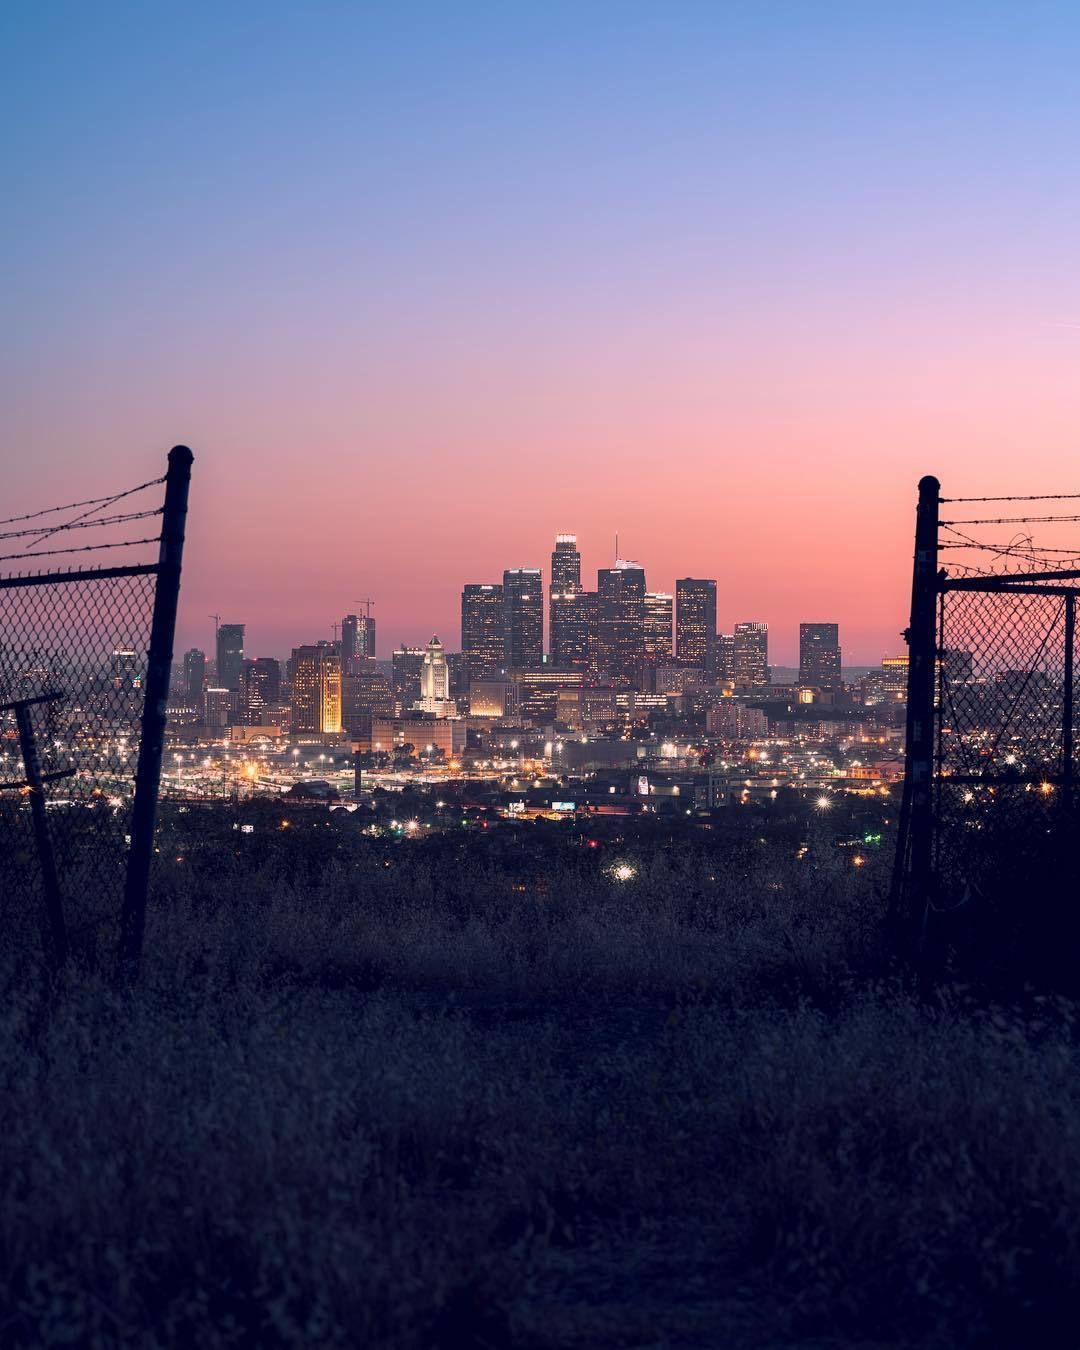 Discover Los Angeles On Instagram Zombiago Photography Top 10 L A Locat Los Angeles Photography Locations Scenery Photography Scenery Photography City